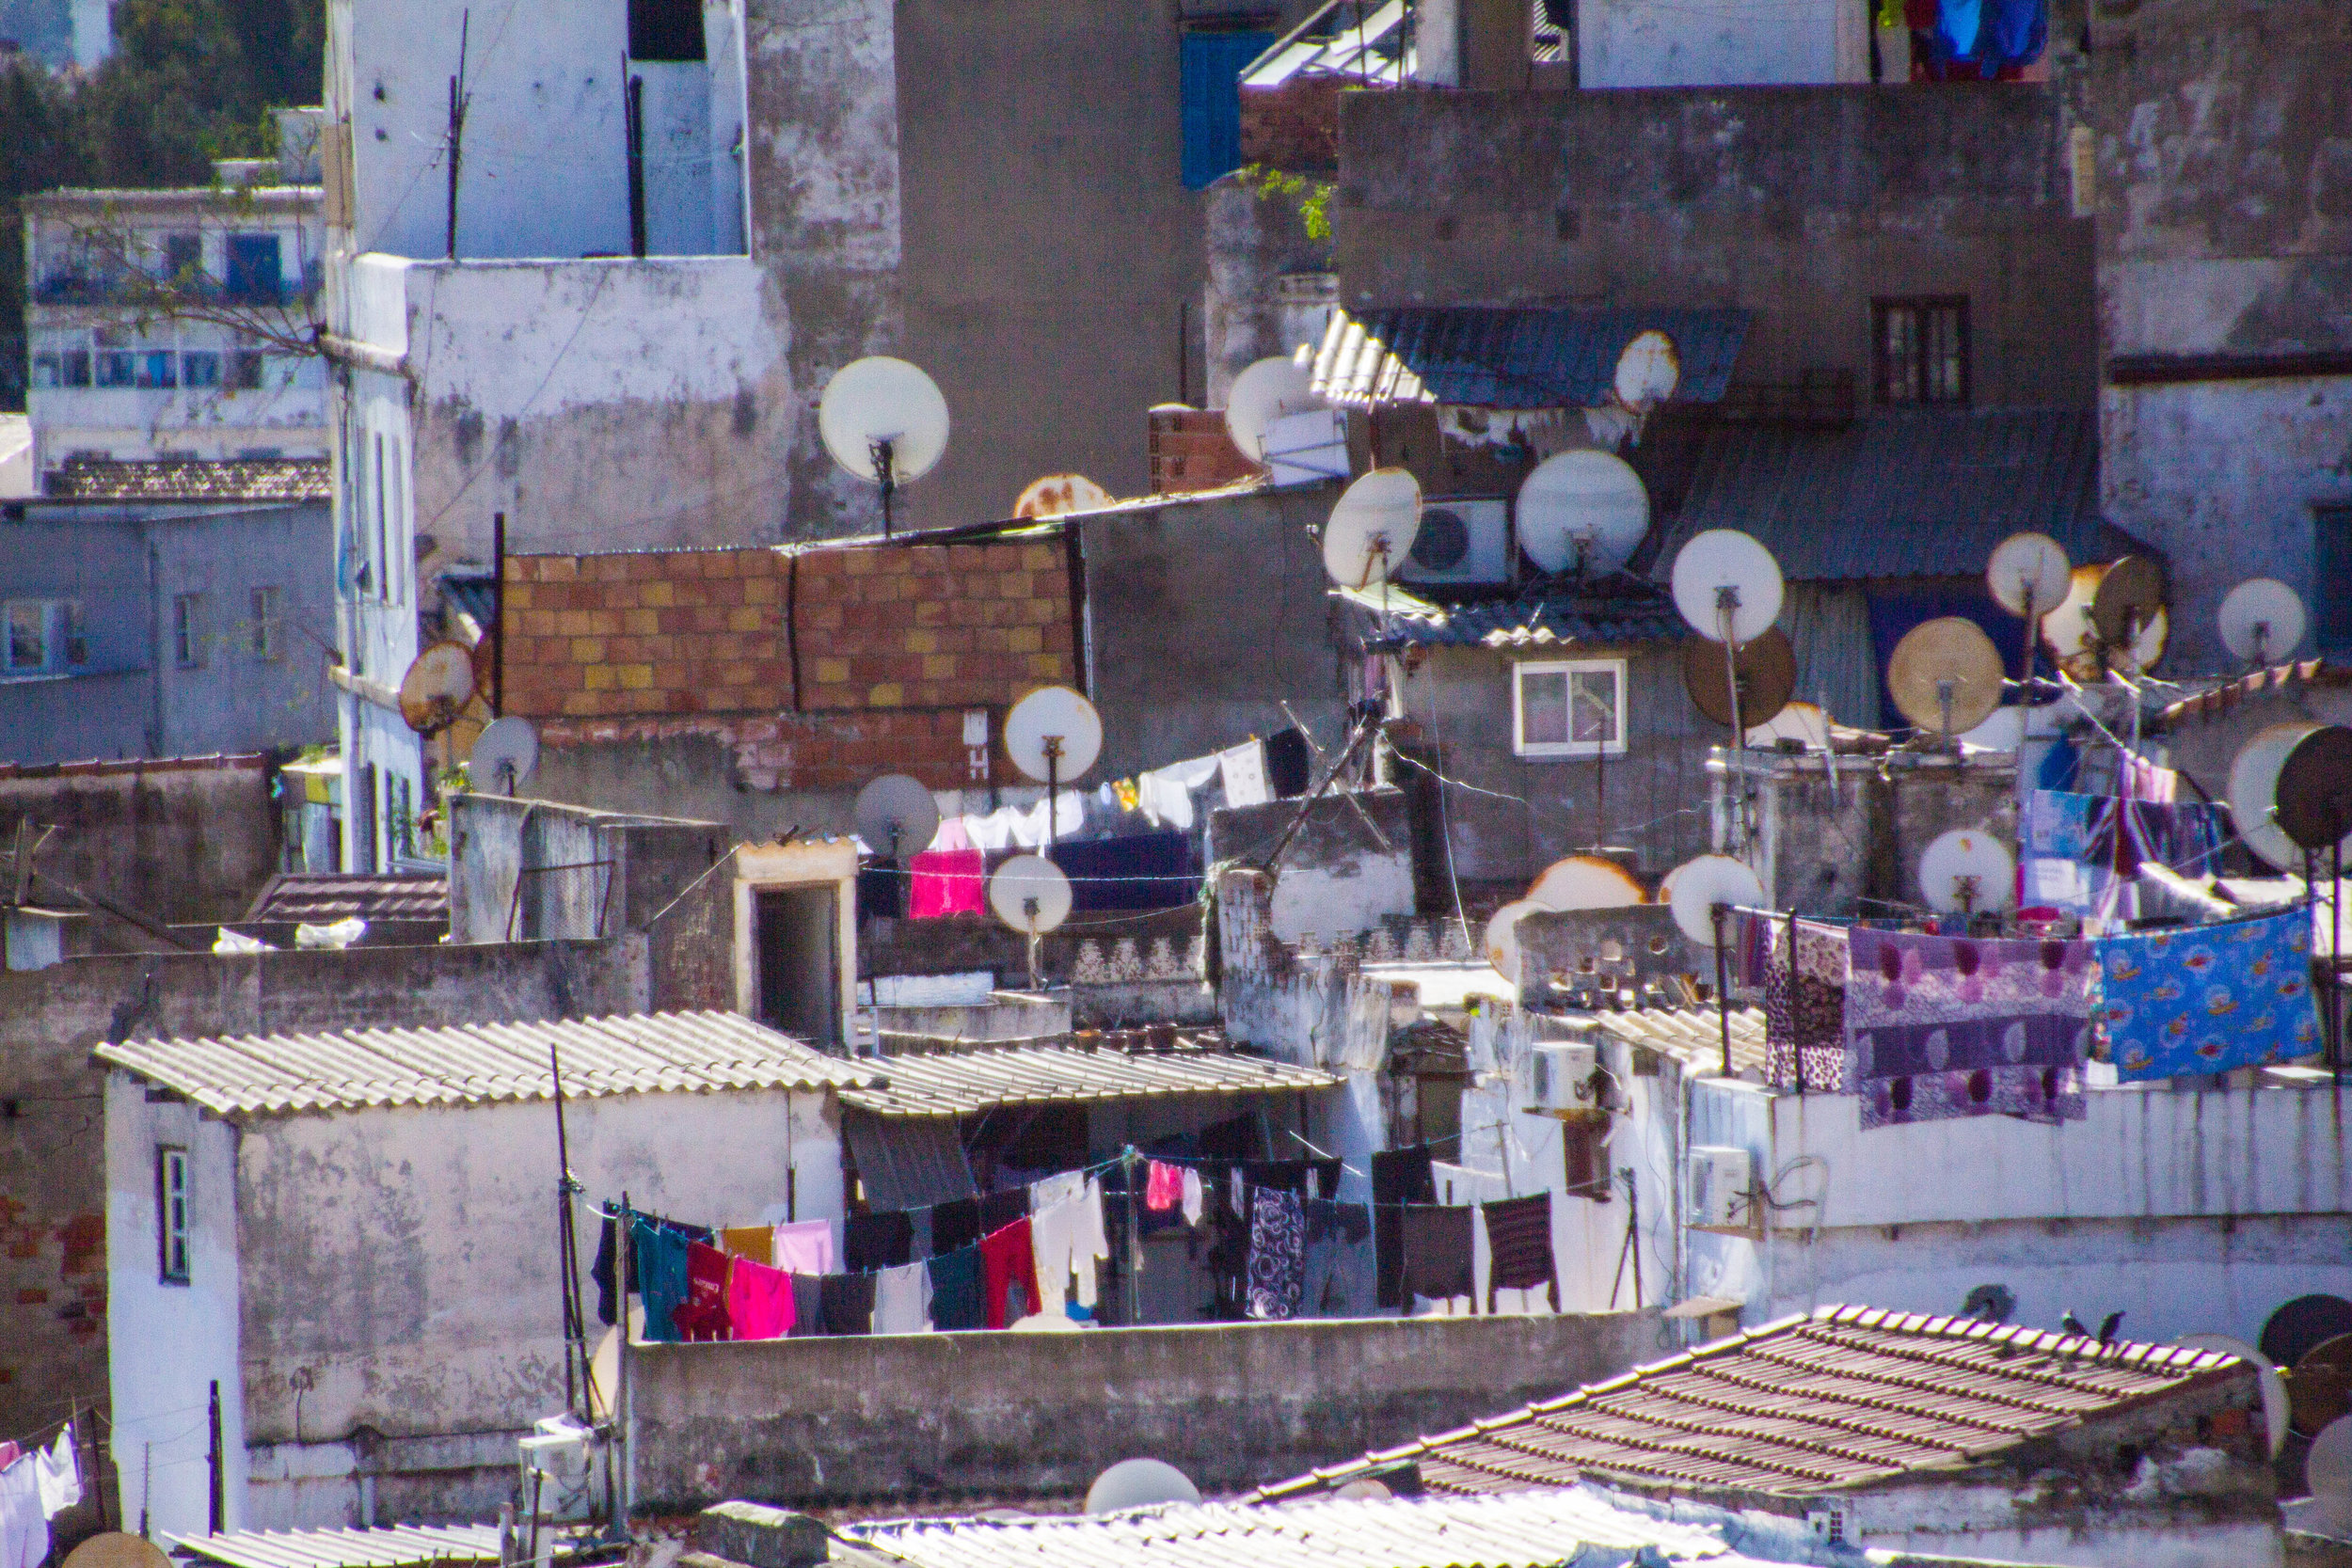 casbah-from-above-algiers-algeria-29.jpg